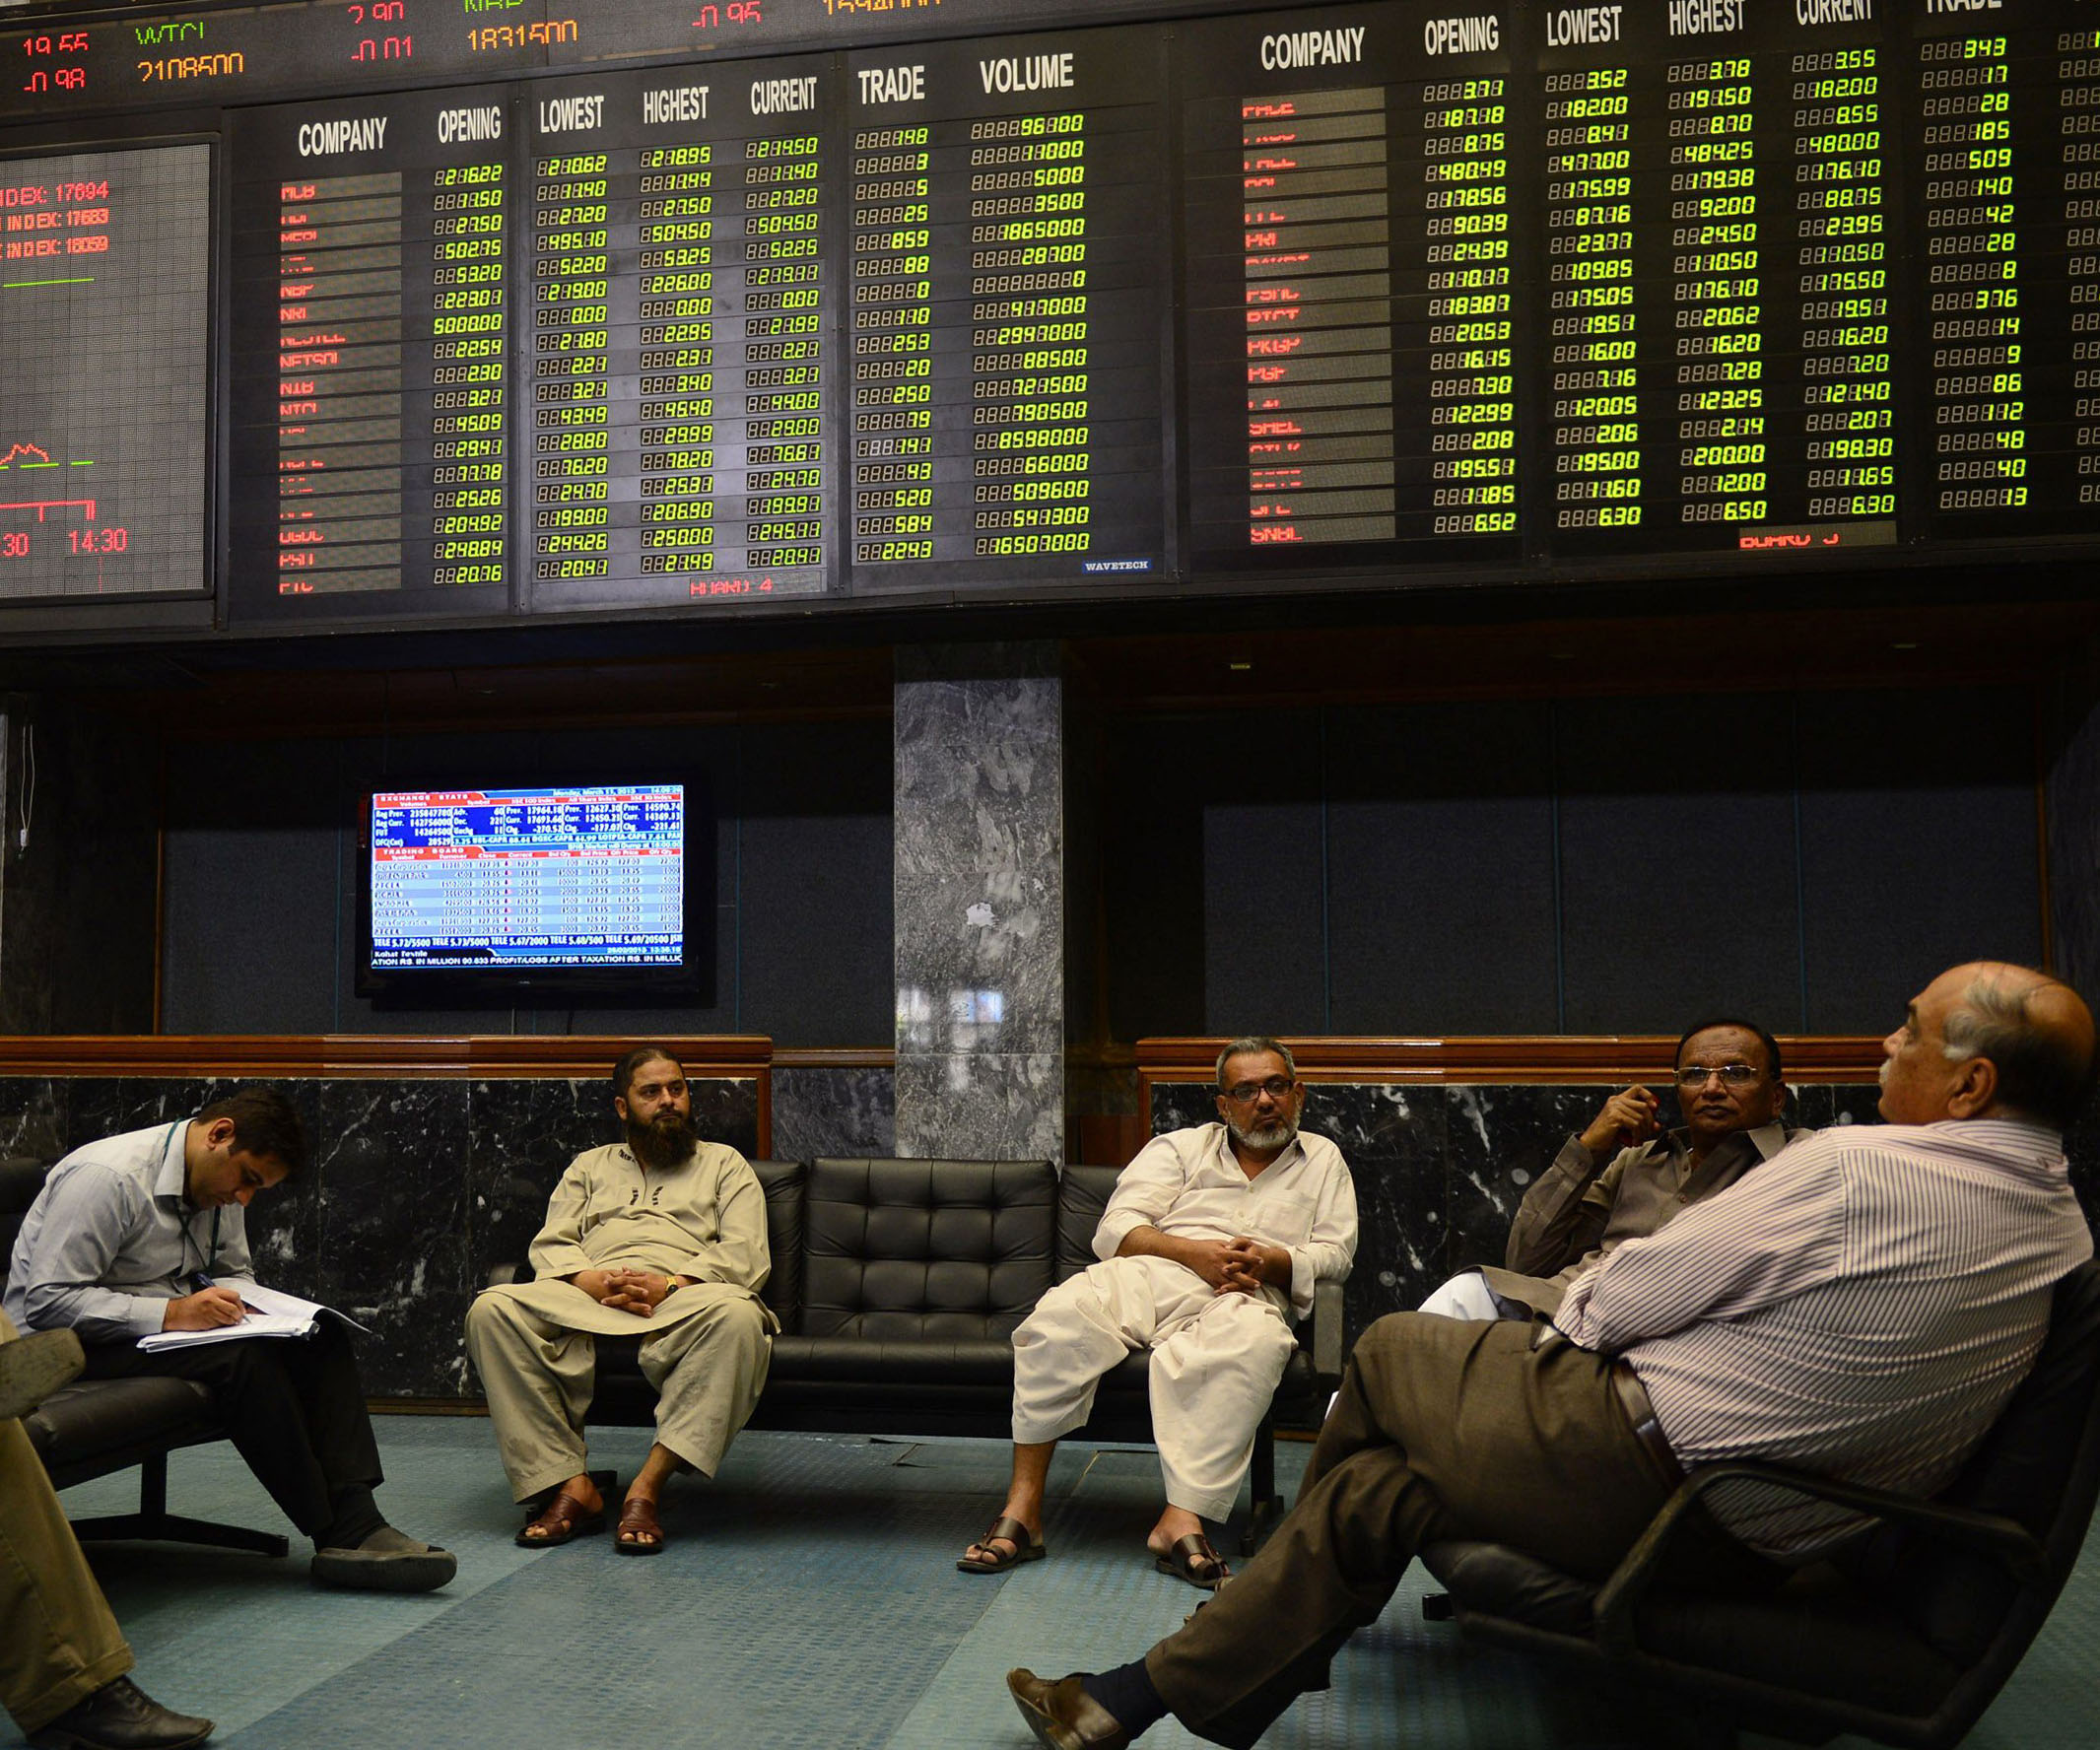 Benchmark index drops 1.68% to settle at 36,752.57 points. PHOTO: AFP